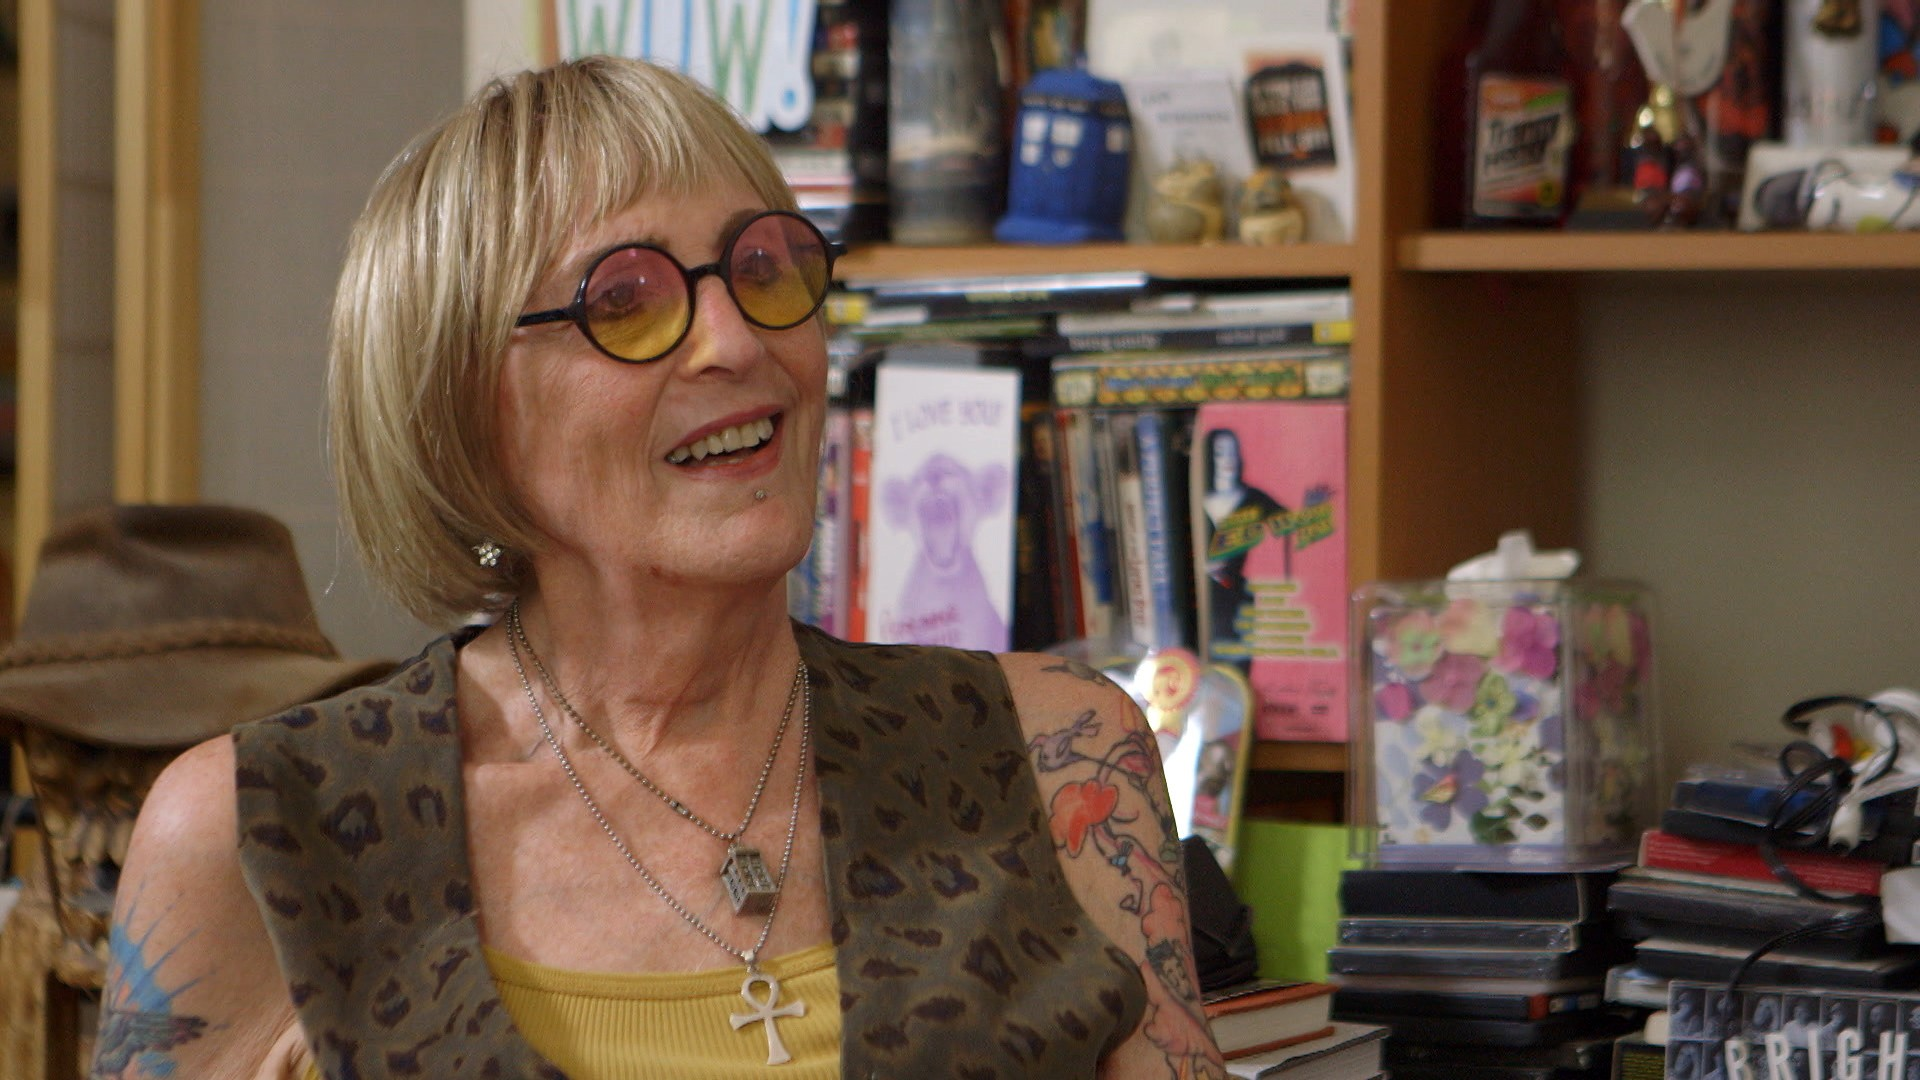 Ex-Scientology Leader and Trans Icon Kate Bornstein on What It Takes to Survive